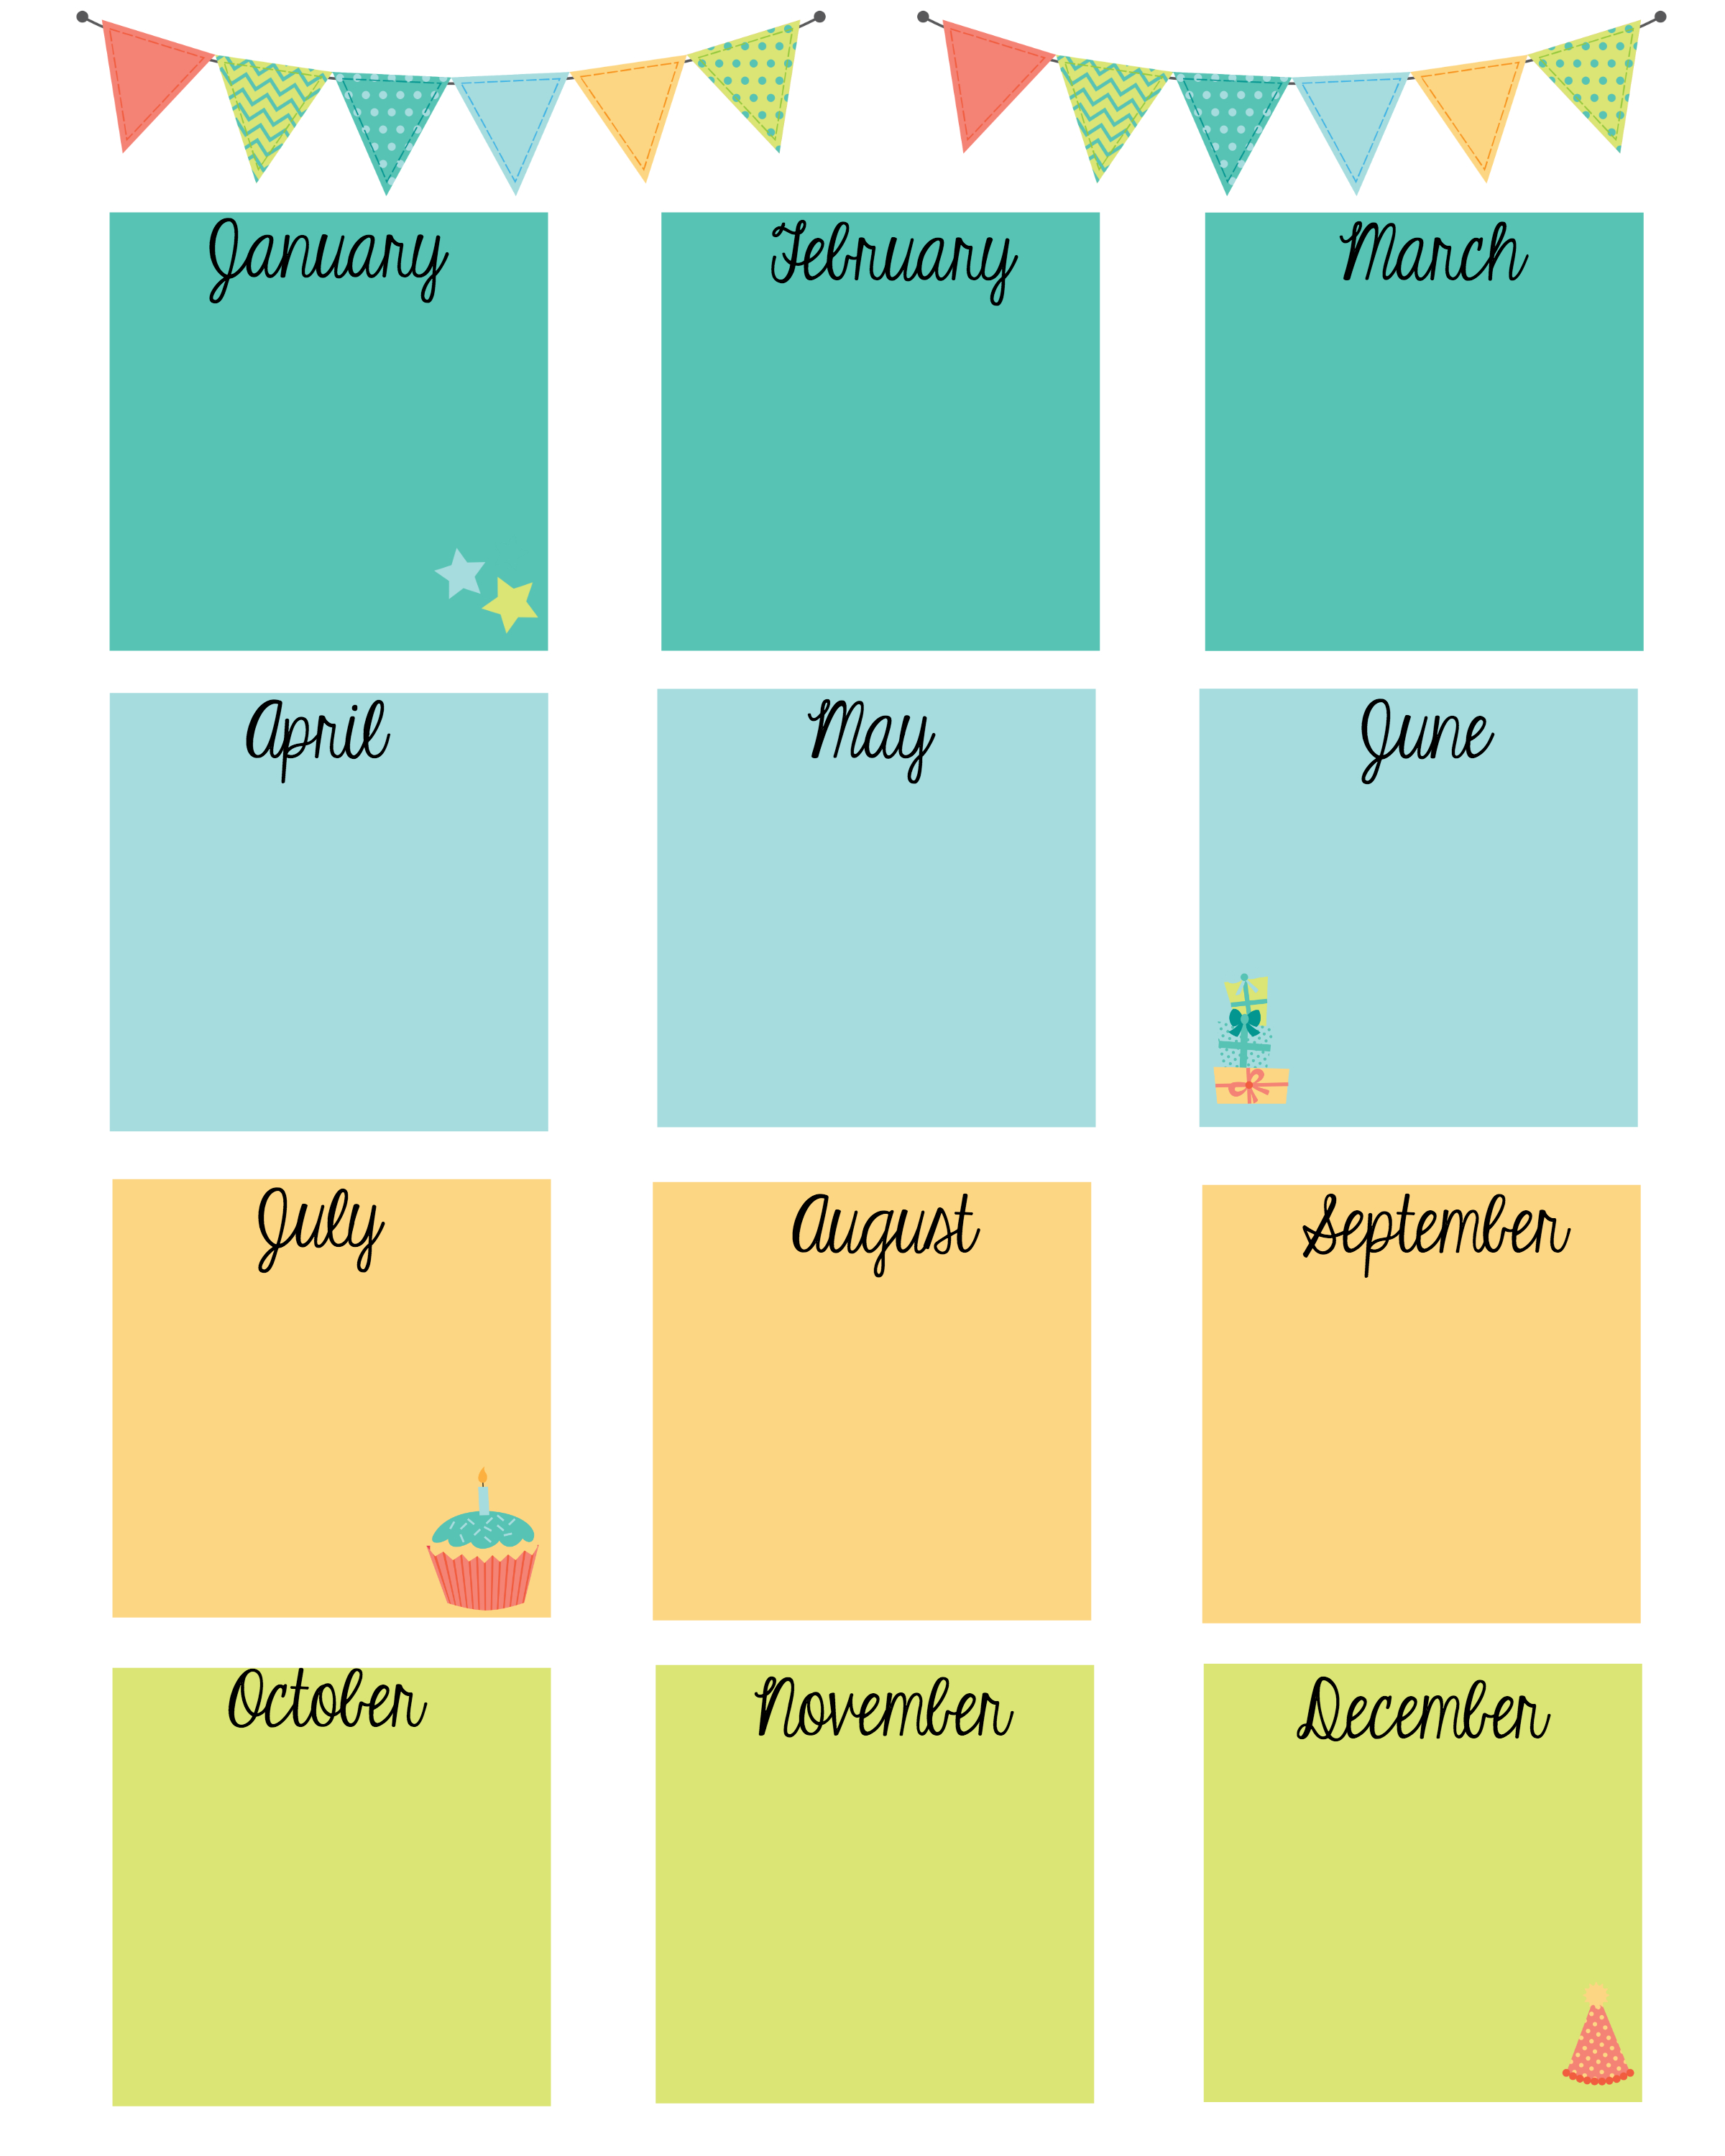 Keep In Touch With Friends With A Birthday Calendar | Calendars - Free Printable Birthday Graph